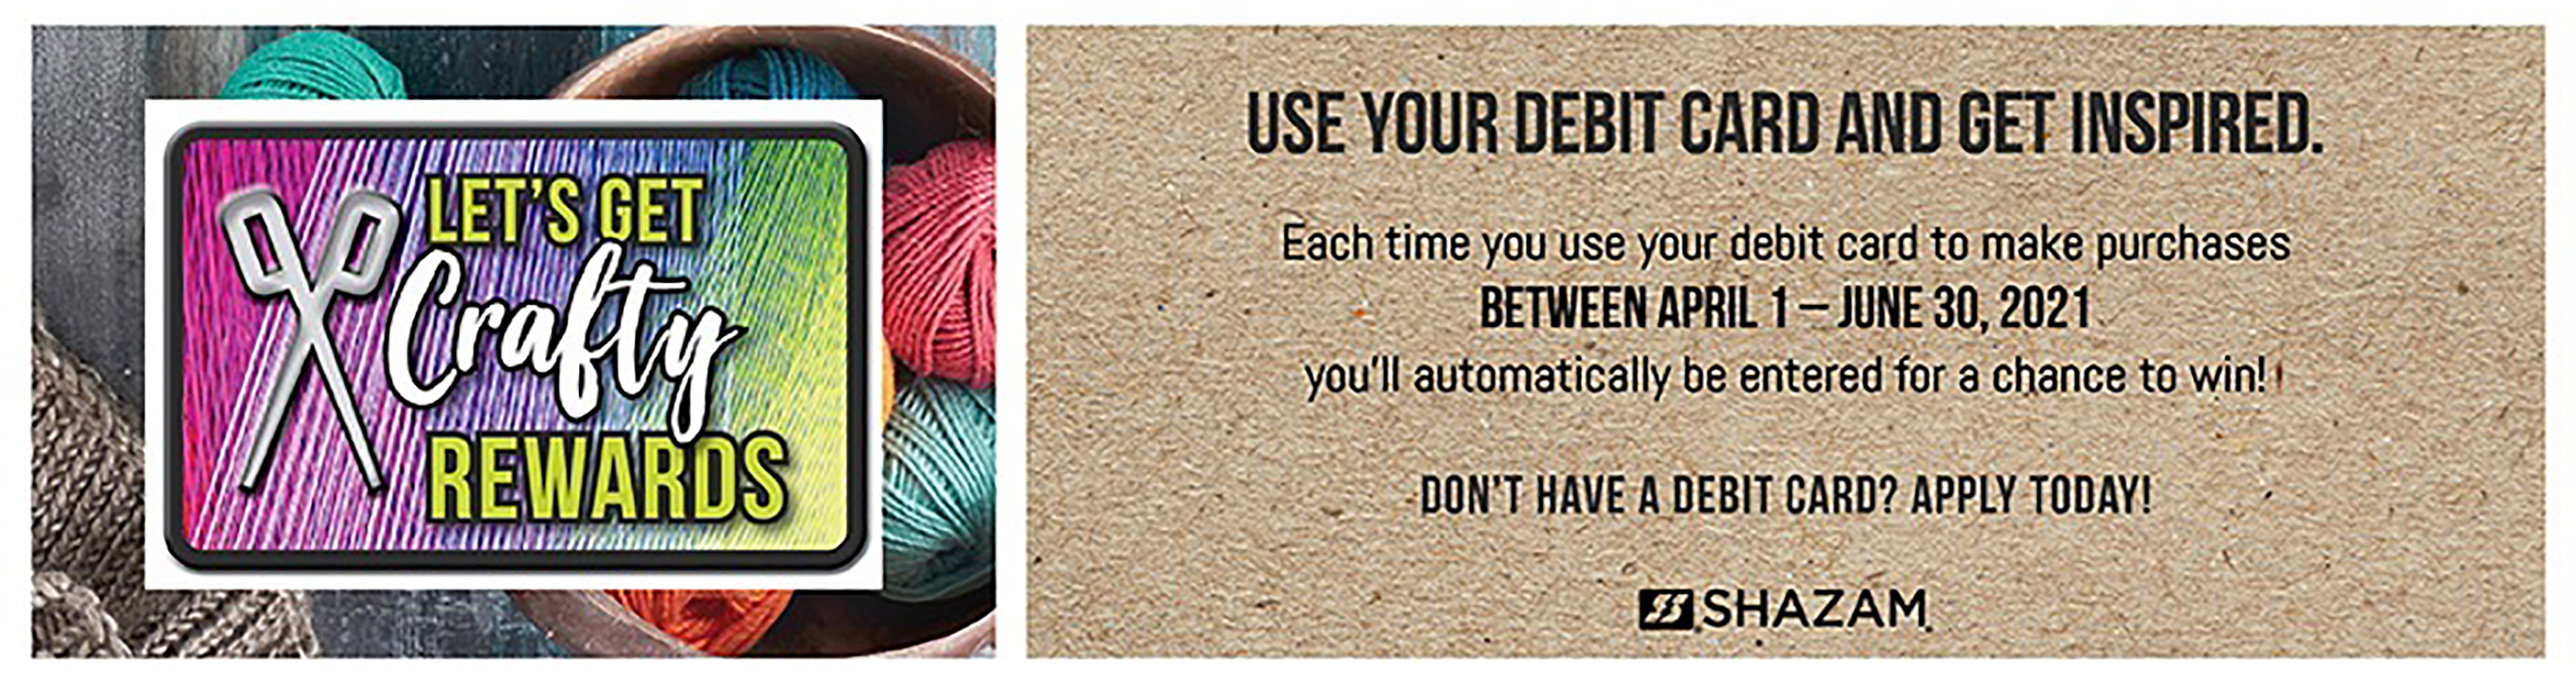 Let's Get Crafty Rewards. Each time you use your debit card to make purchases between April 1 - June 30, 2021 you'll automatically be entered for a chance to win! Contact us for more information. Shazam.